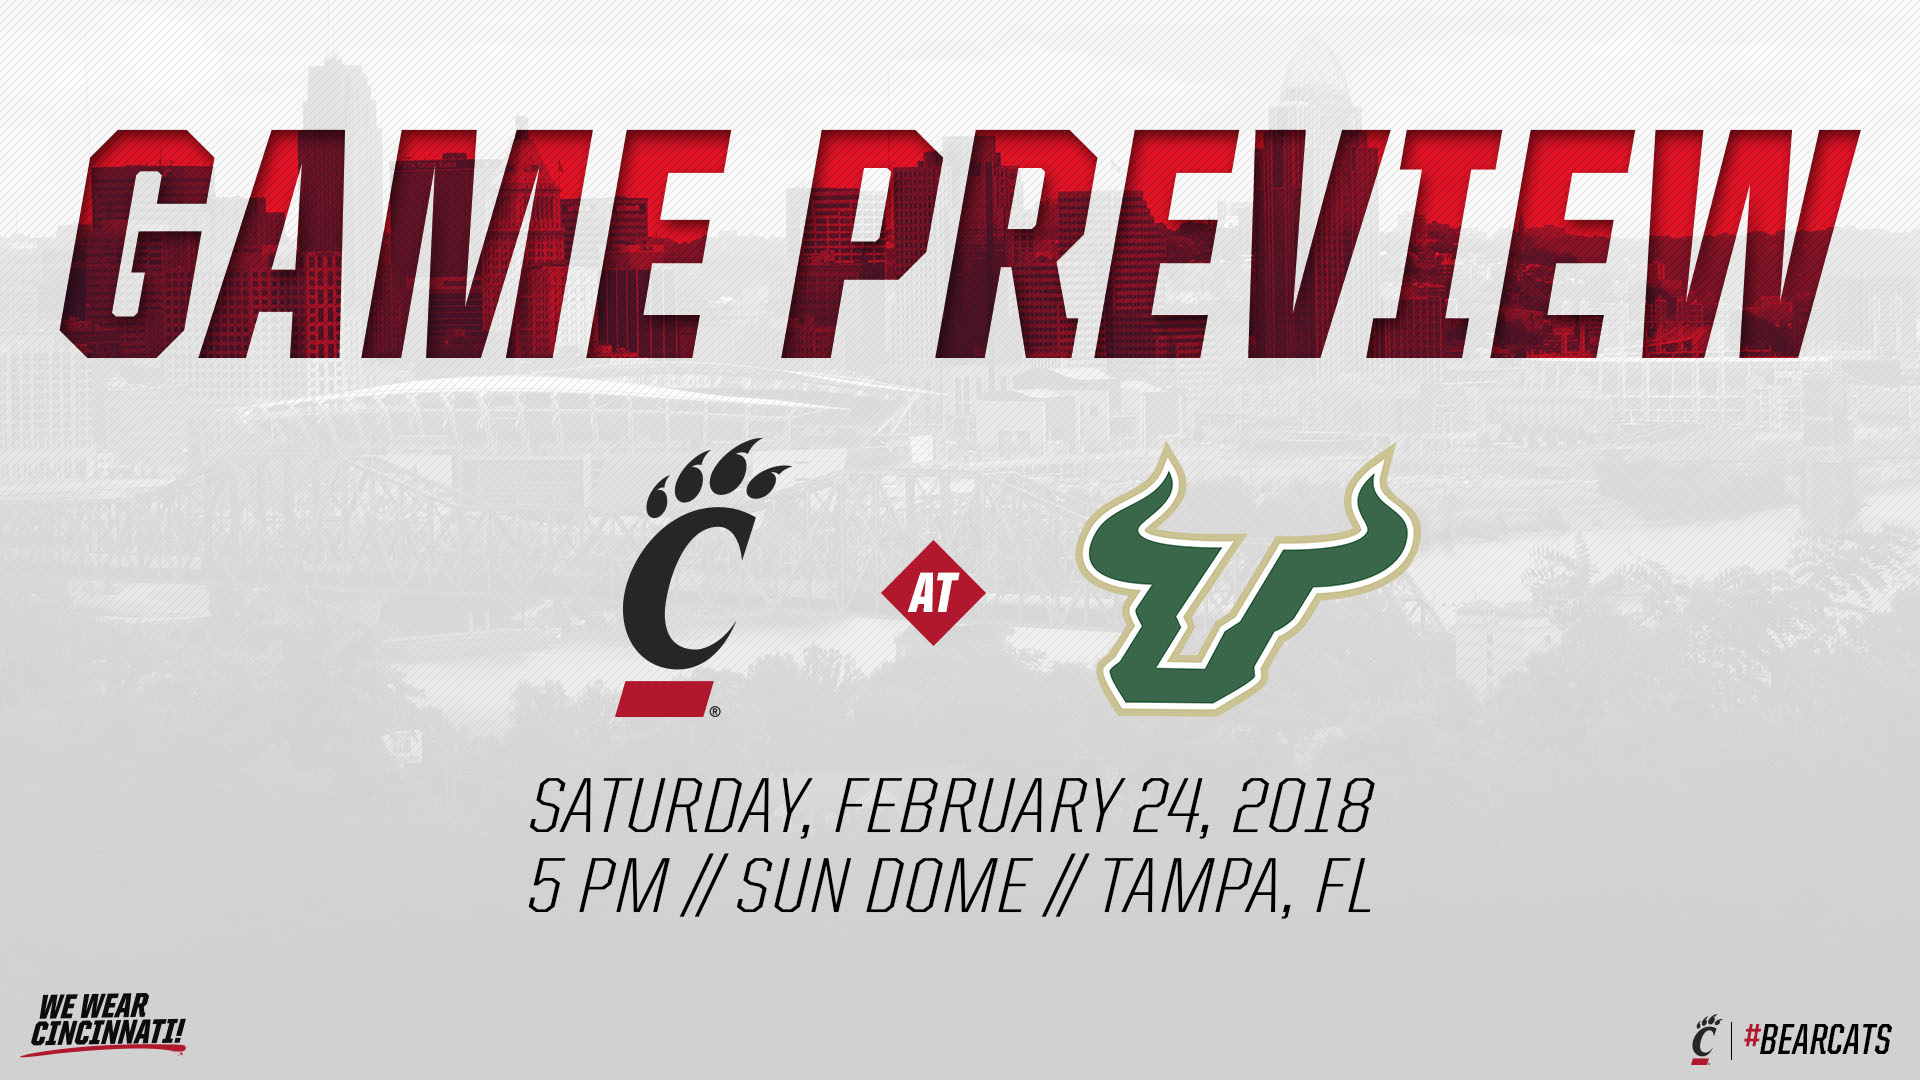 Gamepreview